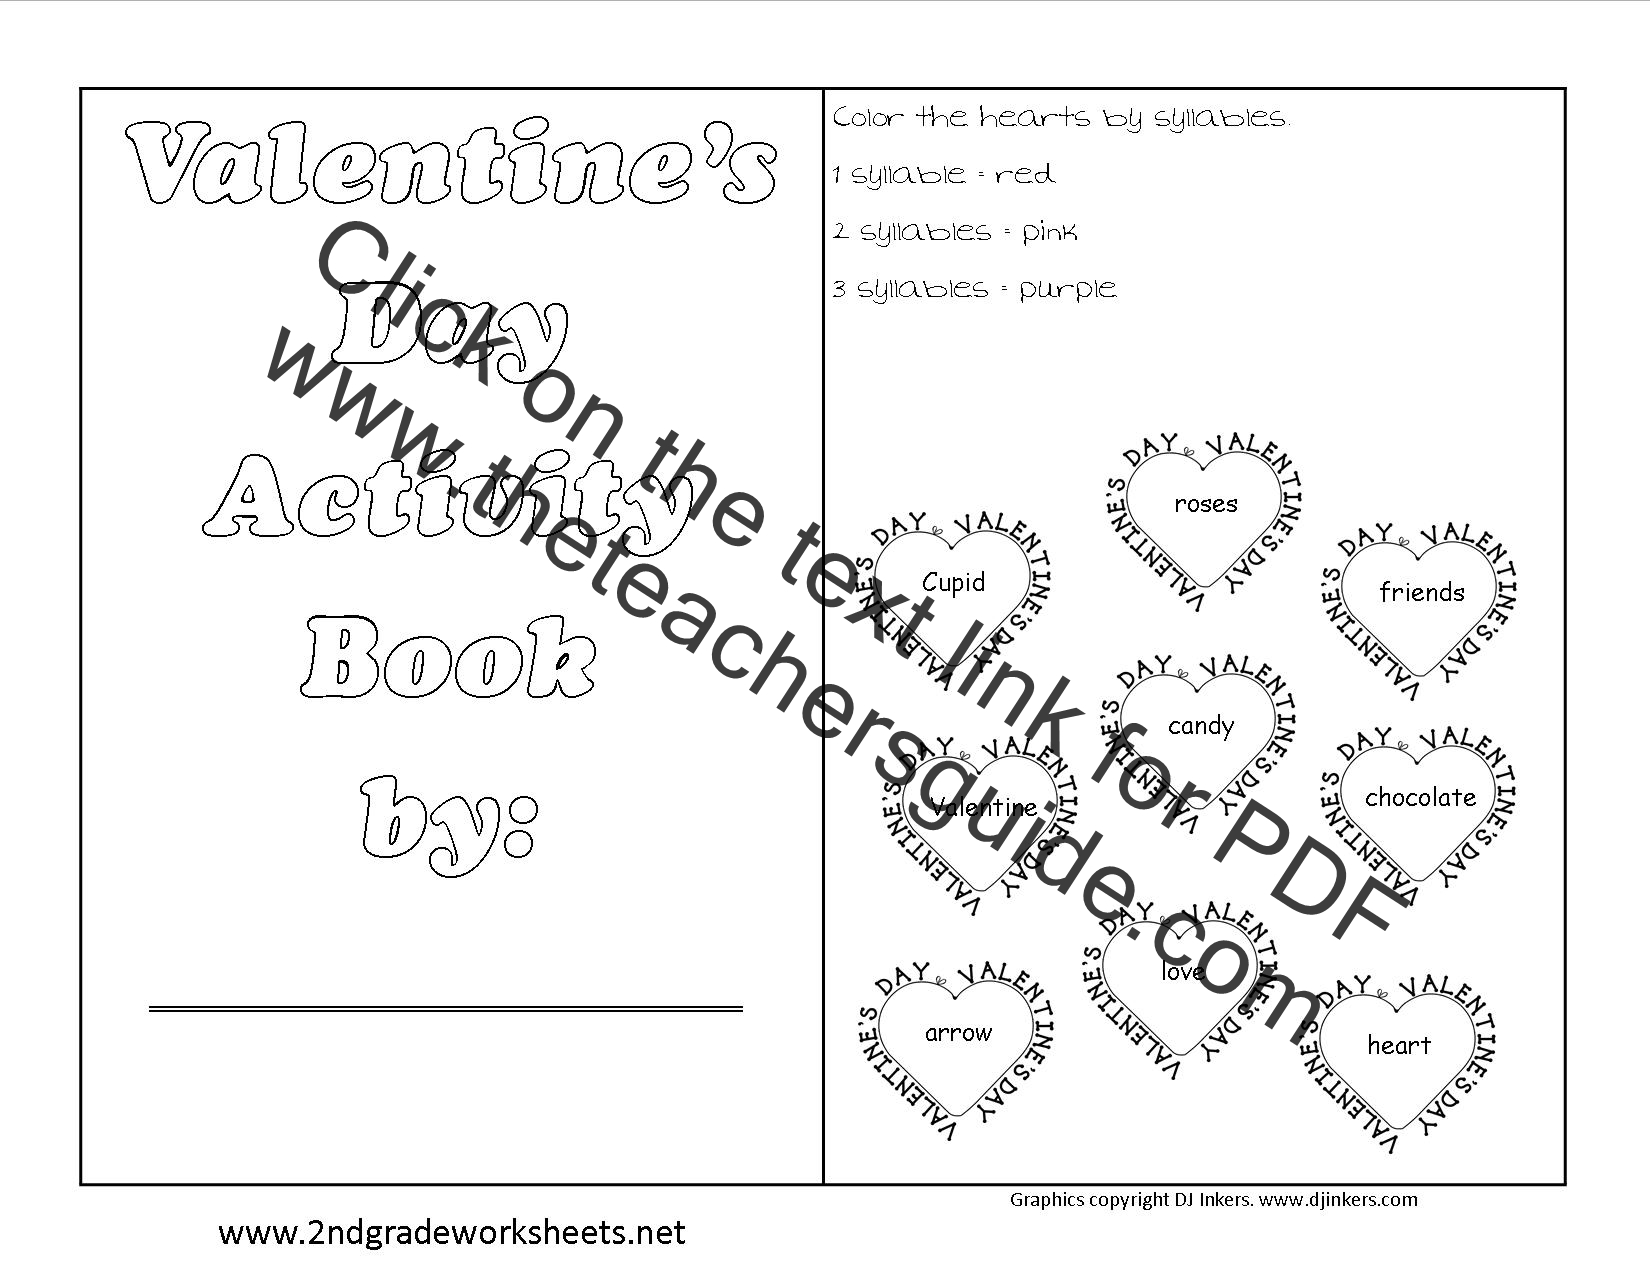 Worksheet Synonyms Kindergarten Mikyu Free Worksheet – Synonyms for Kindergarten Worksheets